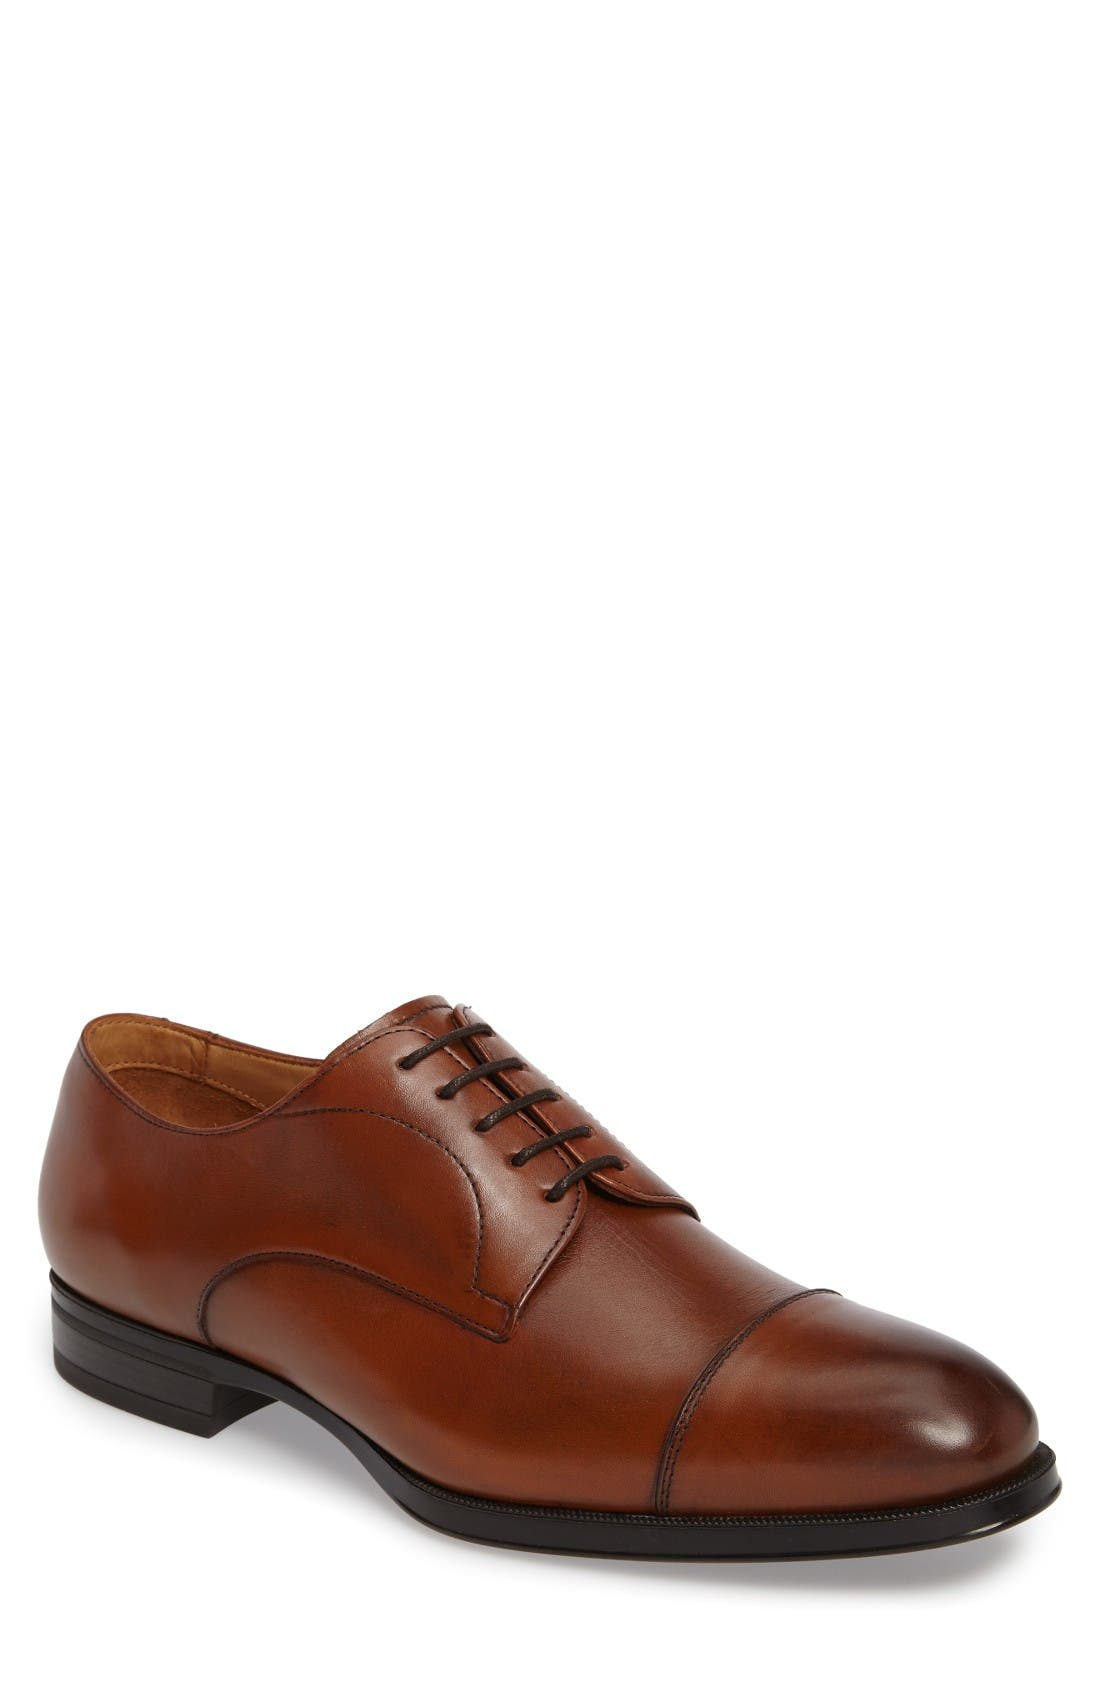 Tosto Cap Toe Derby,                         Main,                         color, Luggage Leather